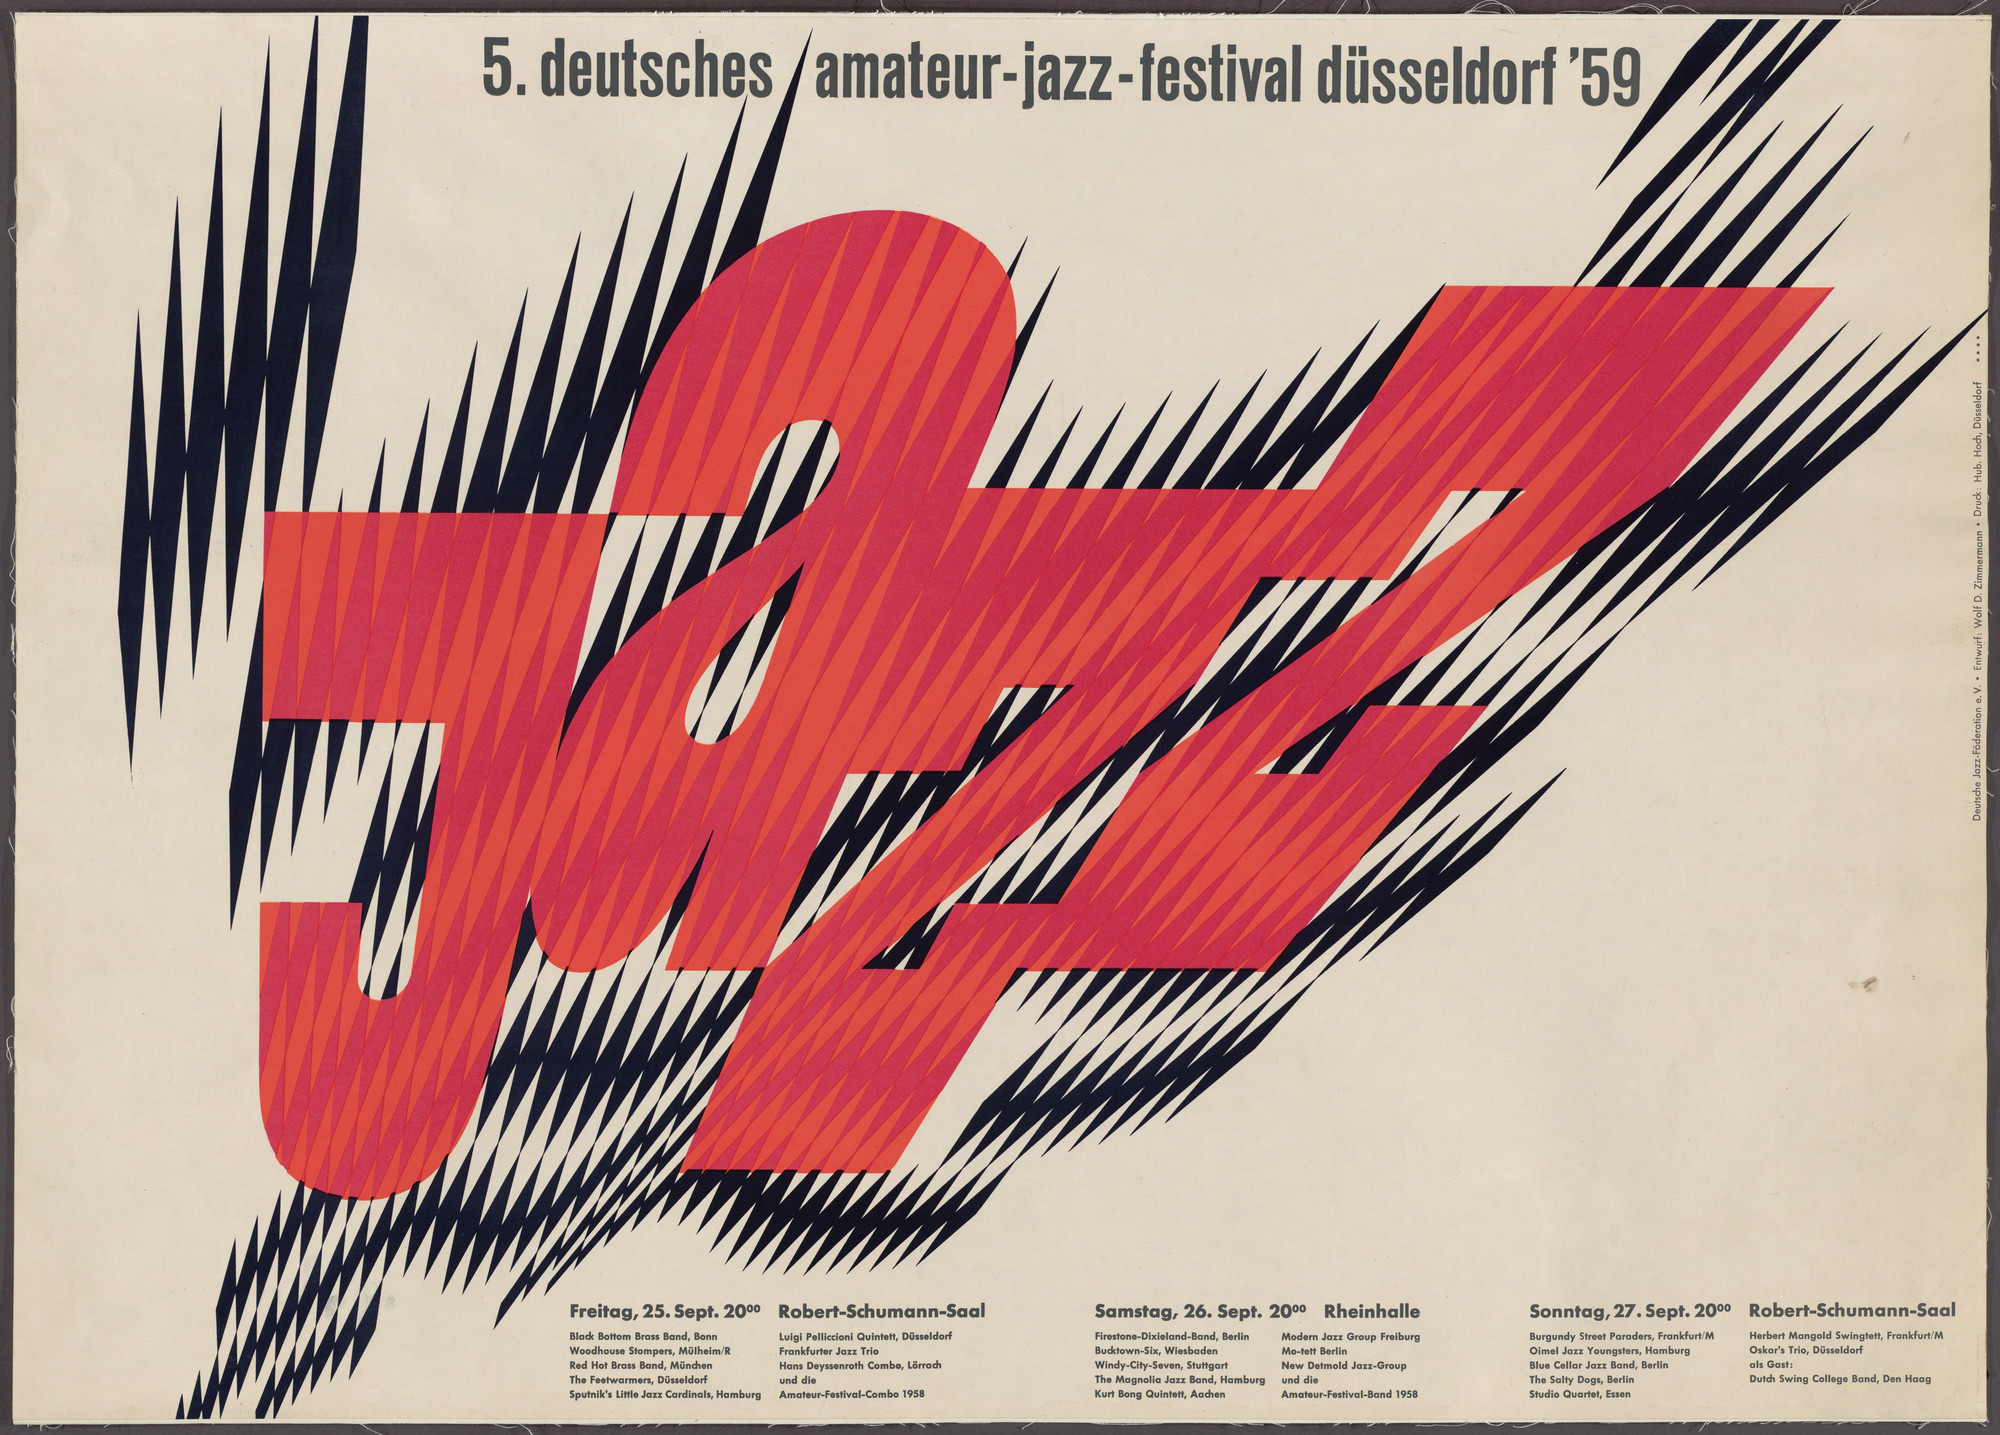 Wolf Zimmerman. Jazz 5 (Poster for the 5th German Amateur Jazz Festival held in Dusseldorf, Germany). 1959